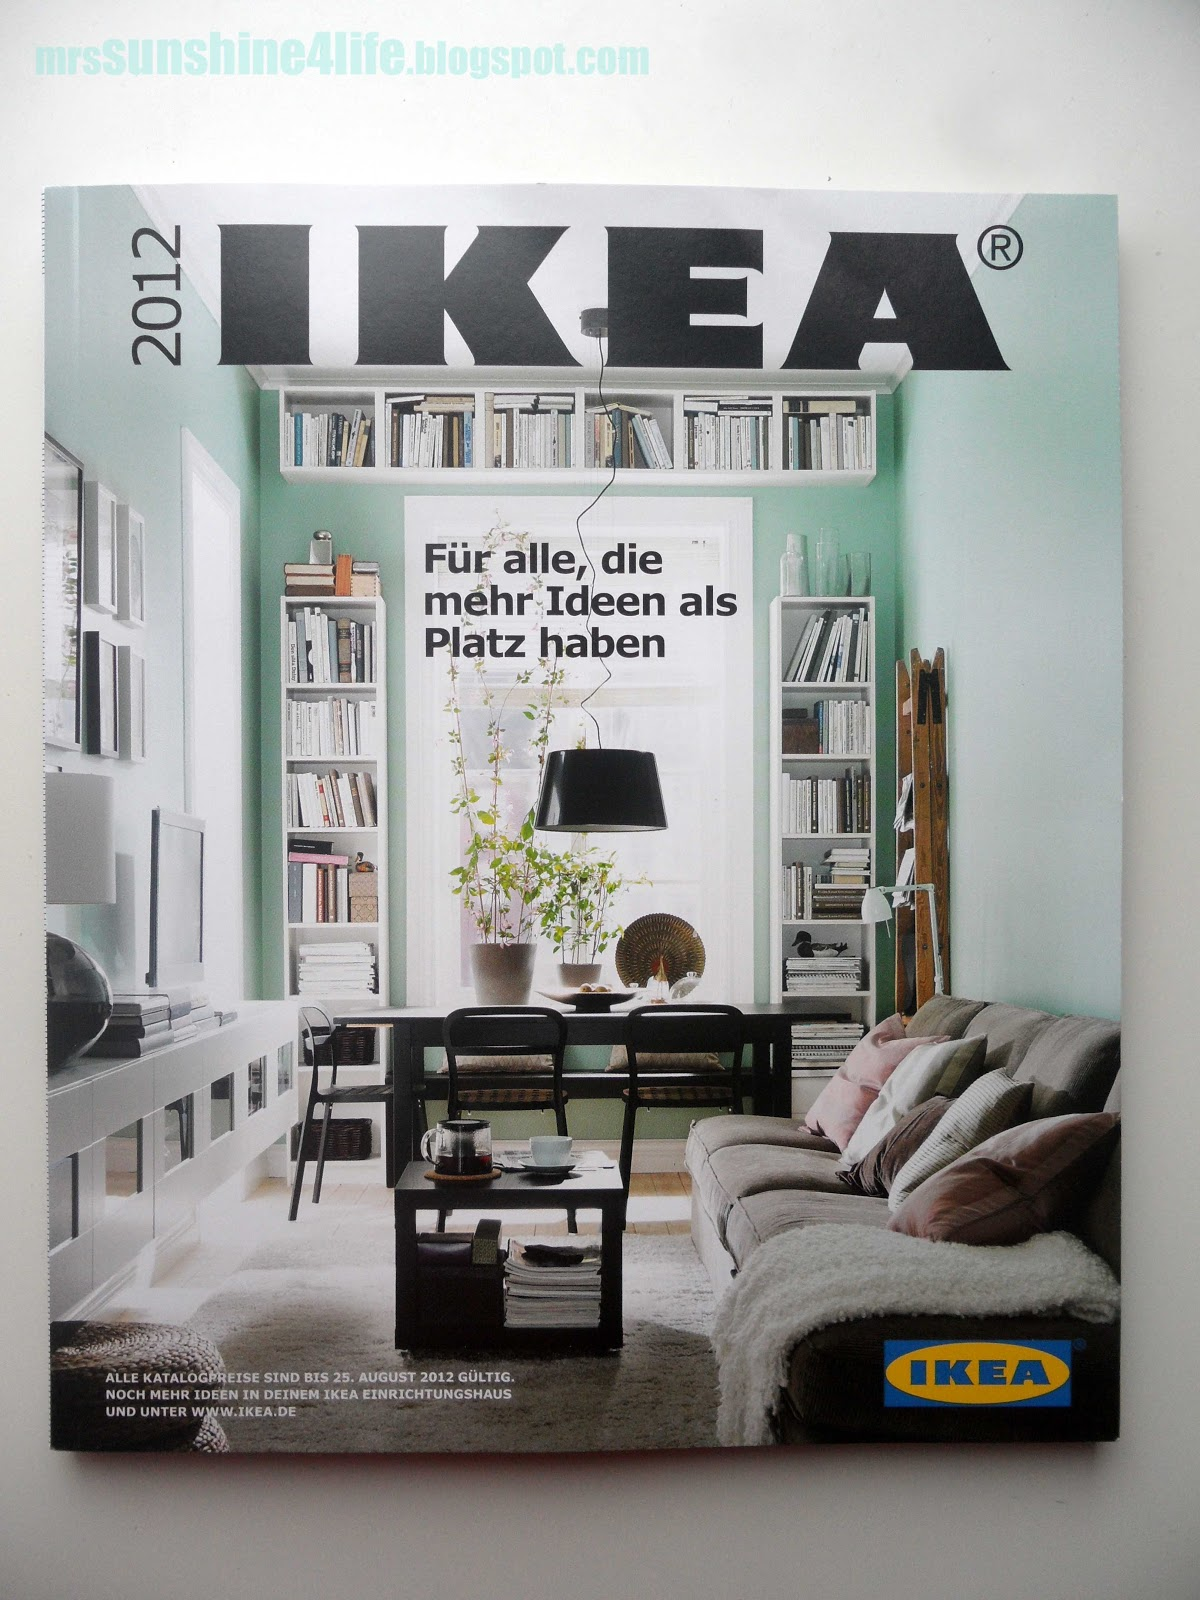 sunshine4life august 2011. Black Bedroom Furniture Sets. Home Design Ideas